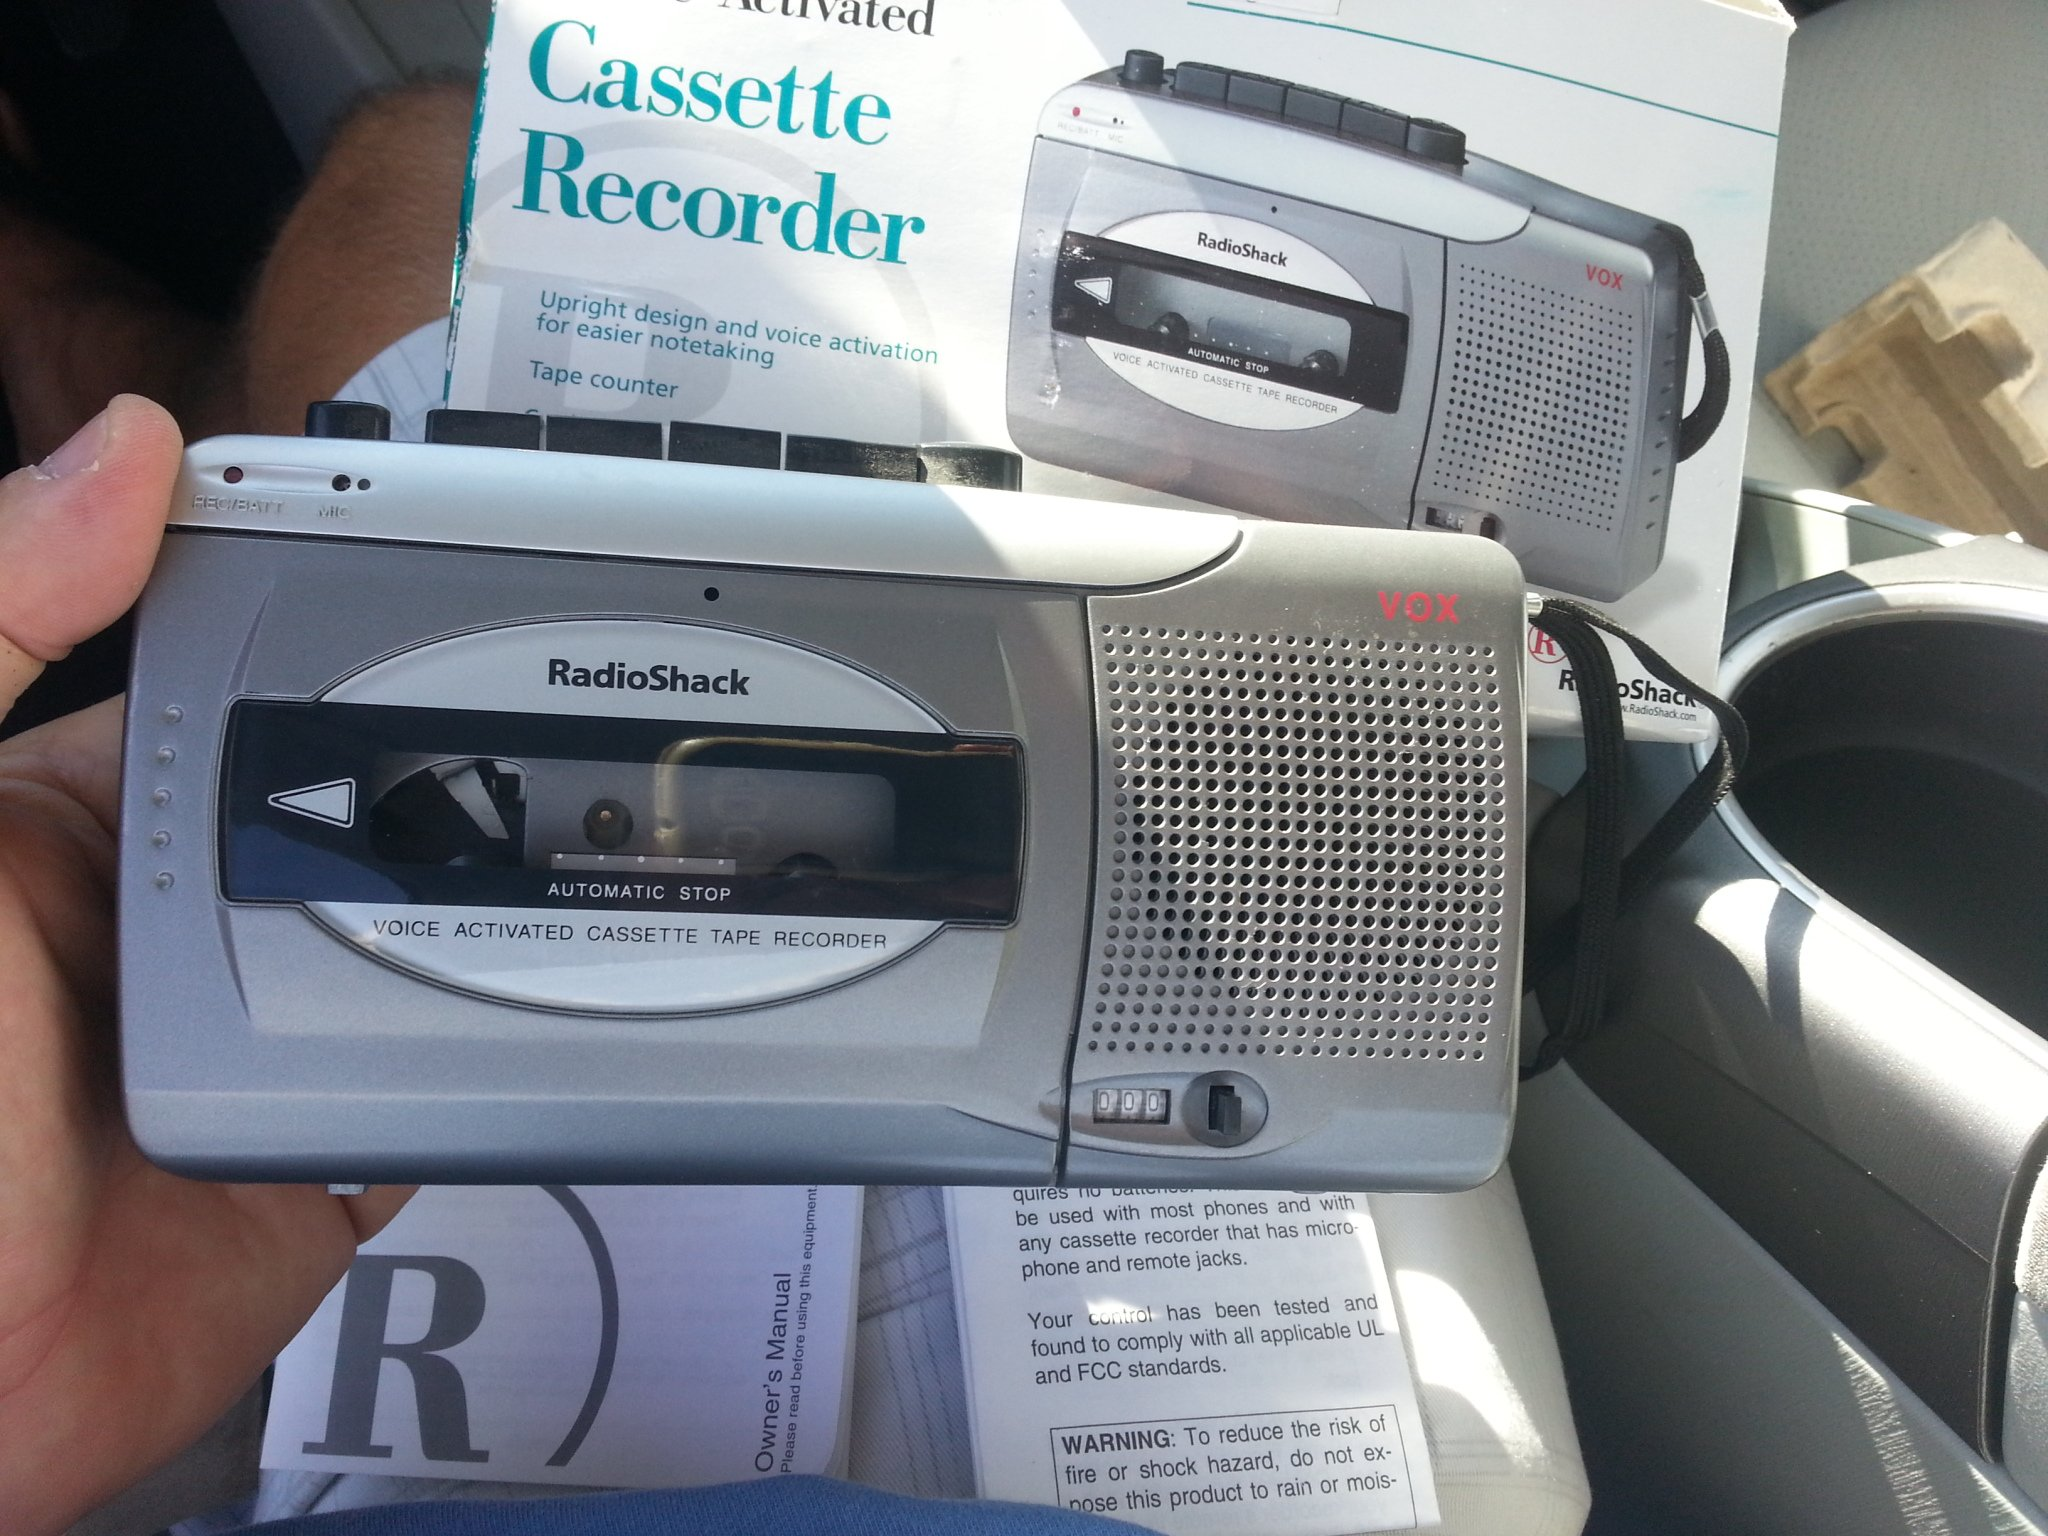 Radio Shack voice-activated Cassette Recorder CTR-123 standard size tapes uaed.